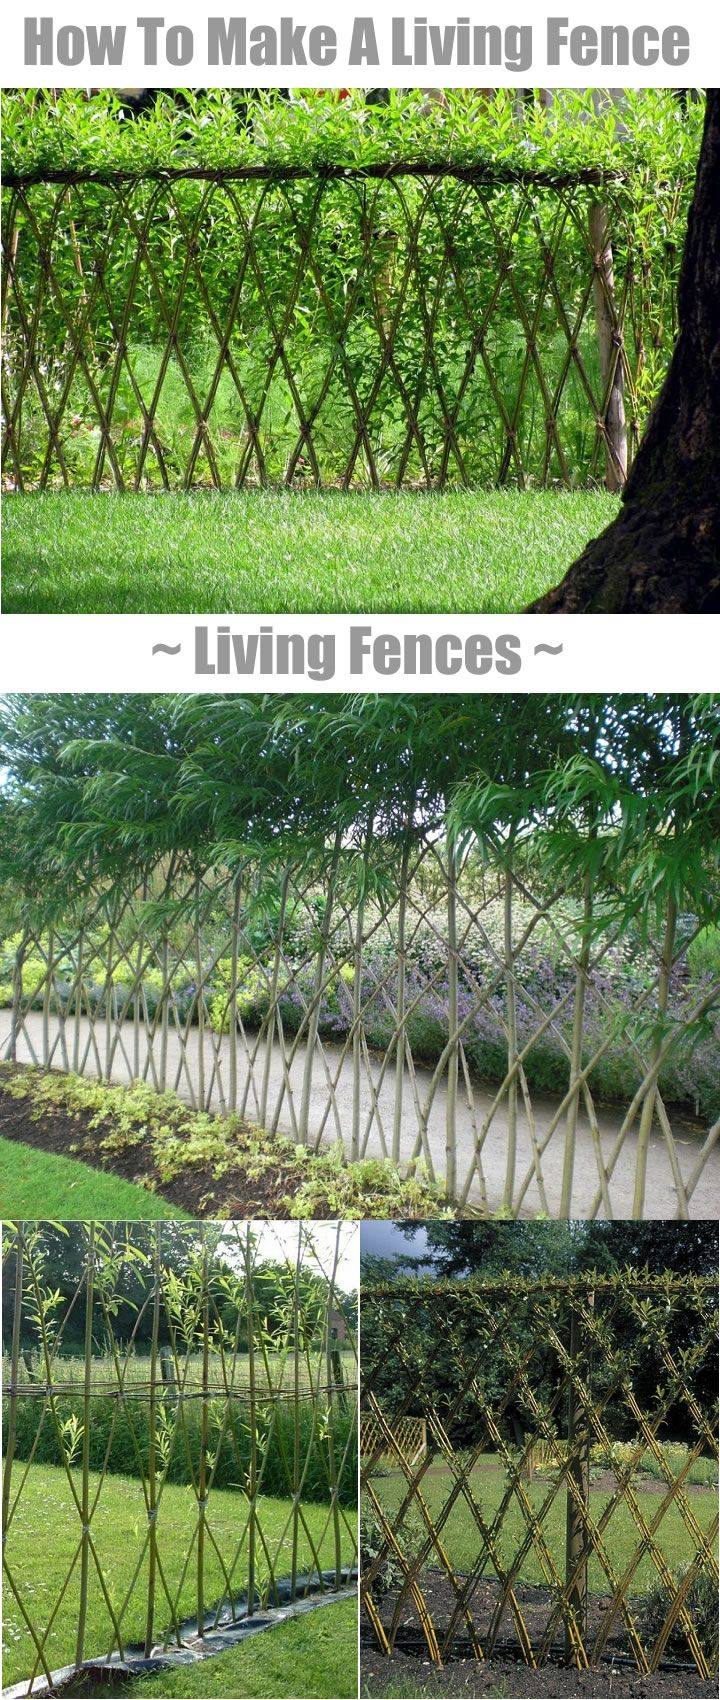 25 unique Garden fences ideas on Pinterest